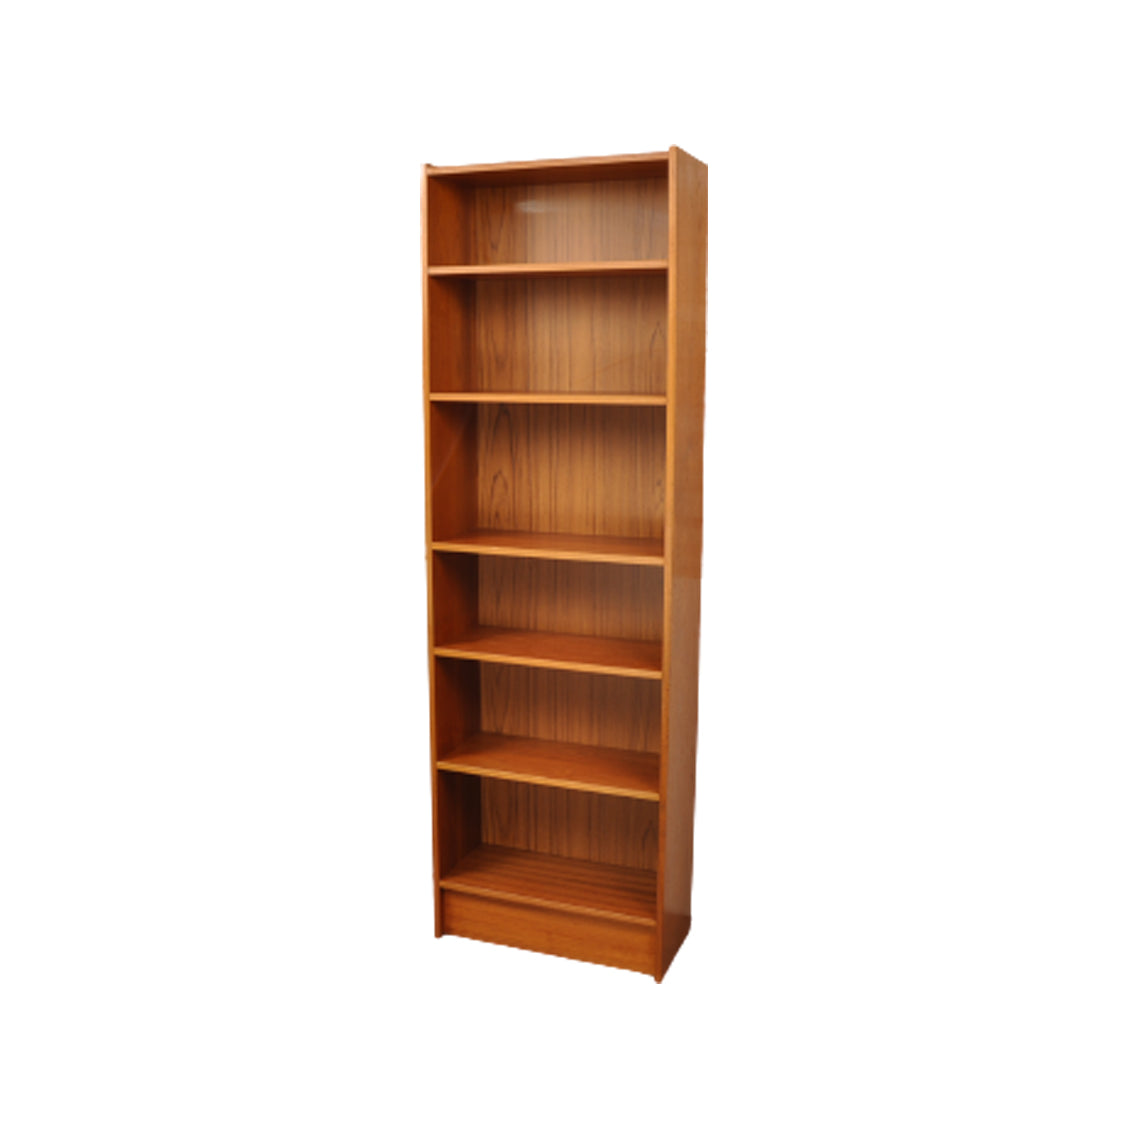 Tall Mid Century Danish teak bookcase